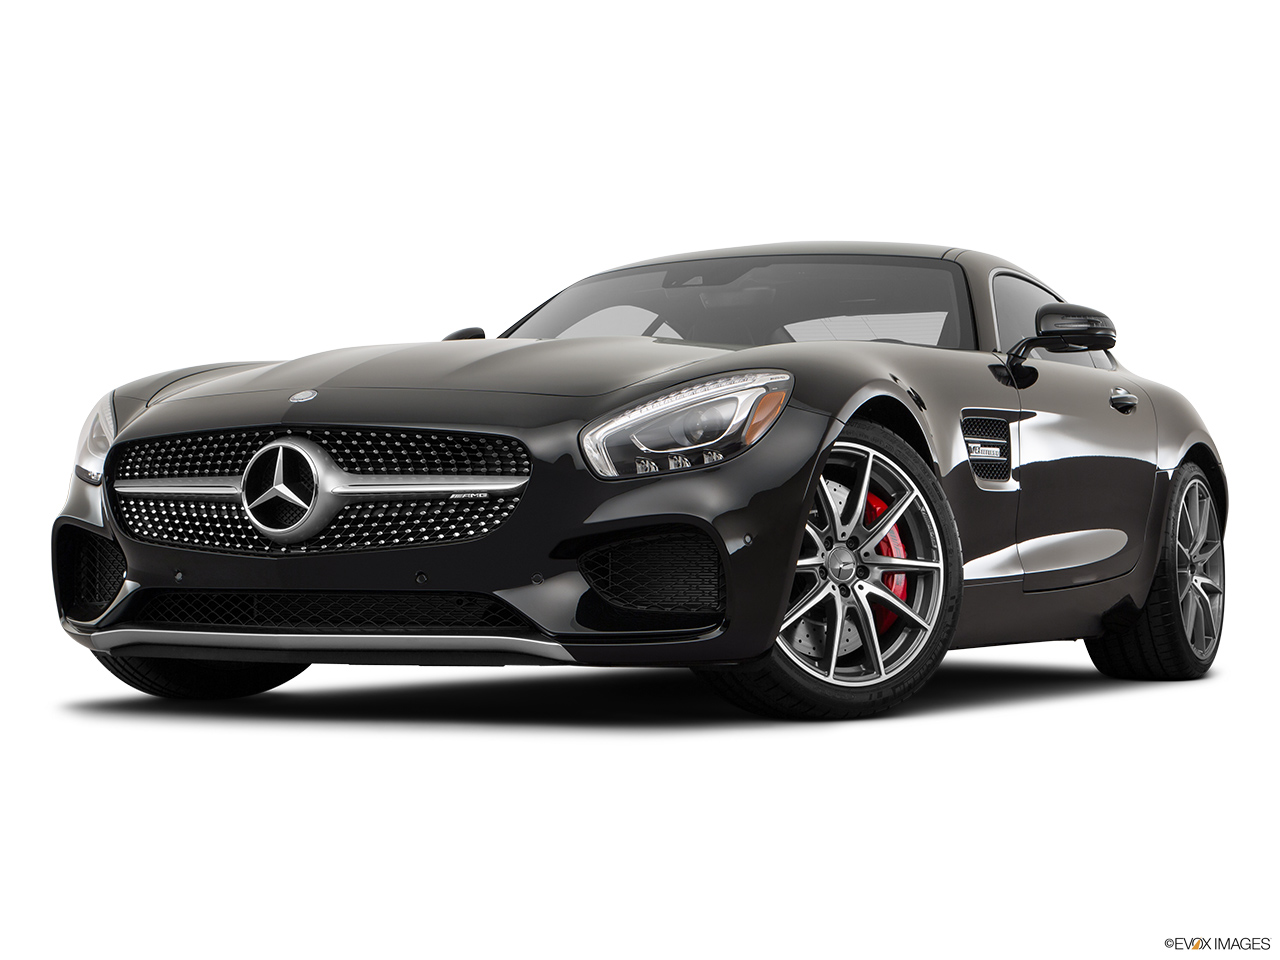 2017 mercedes benz amg gt prices in uae gulf specs for 2017 mercedes benz gts amg price